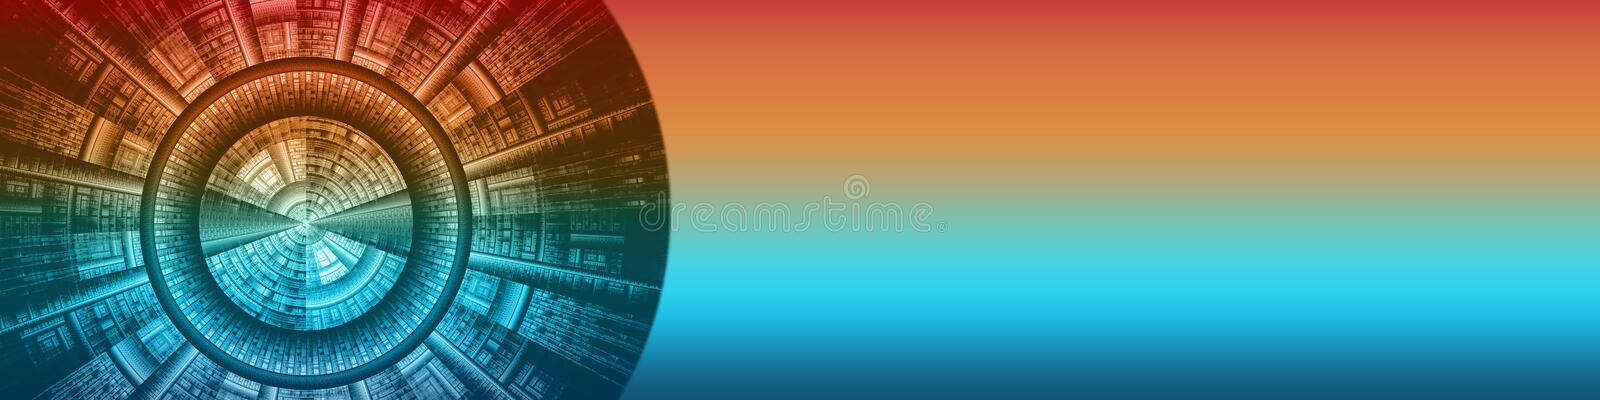 Basic banner media and technology. This basic banner / header / background has a decorative graphic design. You can relate this design to broadcasting stock illustration